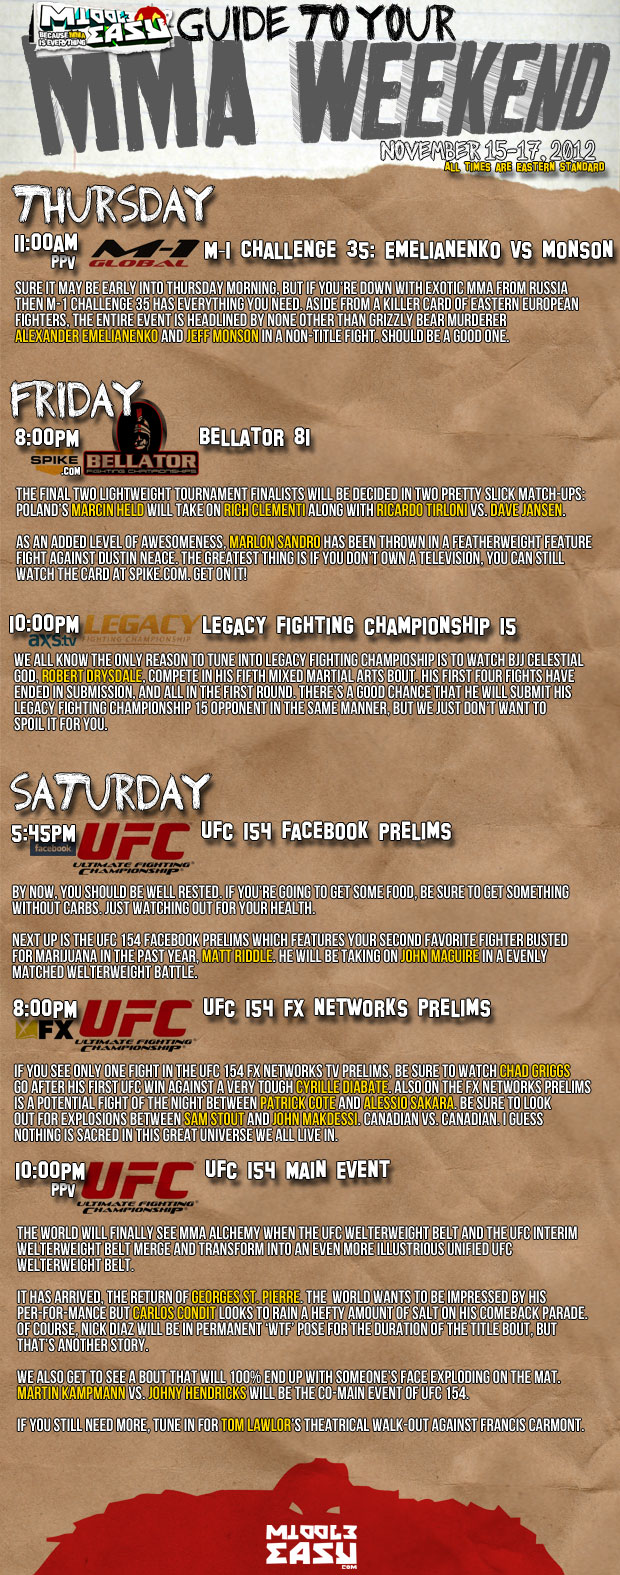 MiddleEasy's Guide to your MMA Weekend - November 15-17th 2012